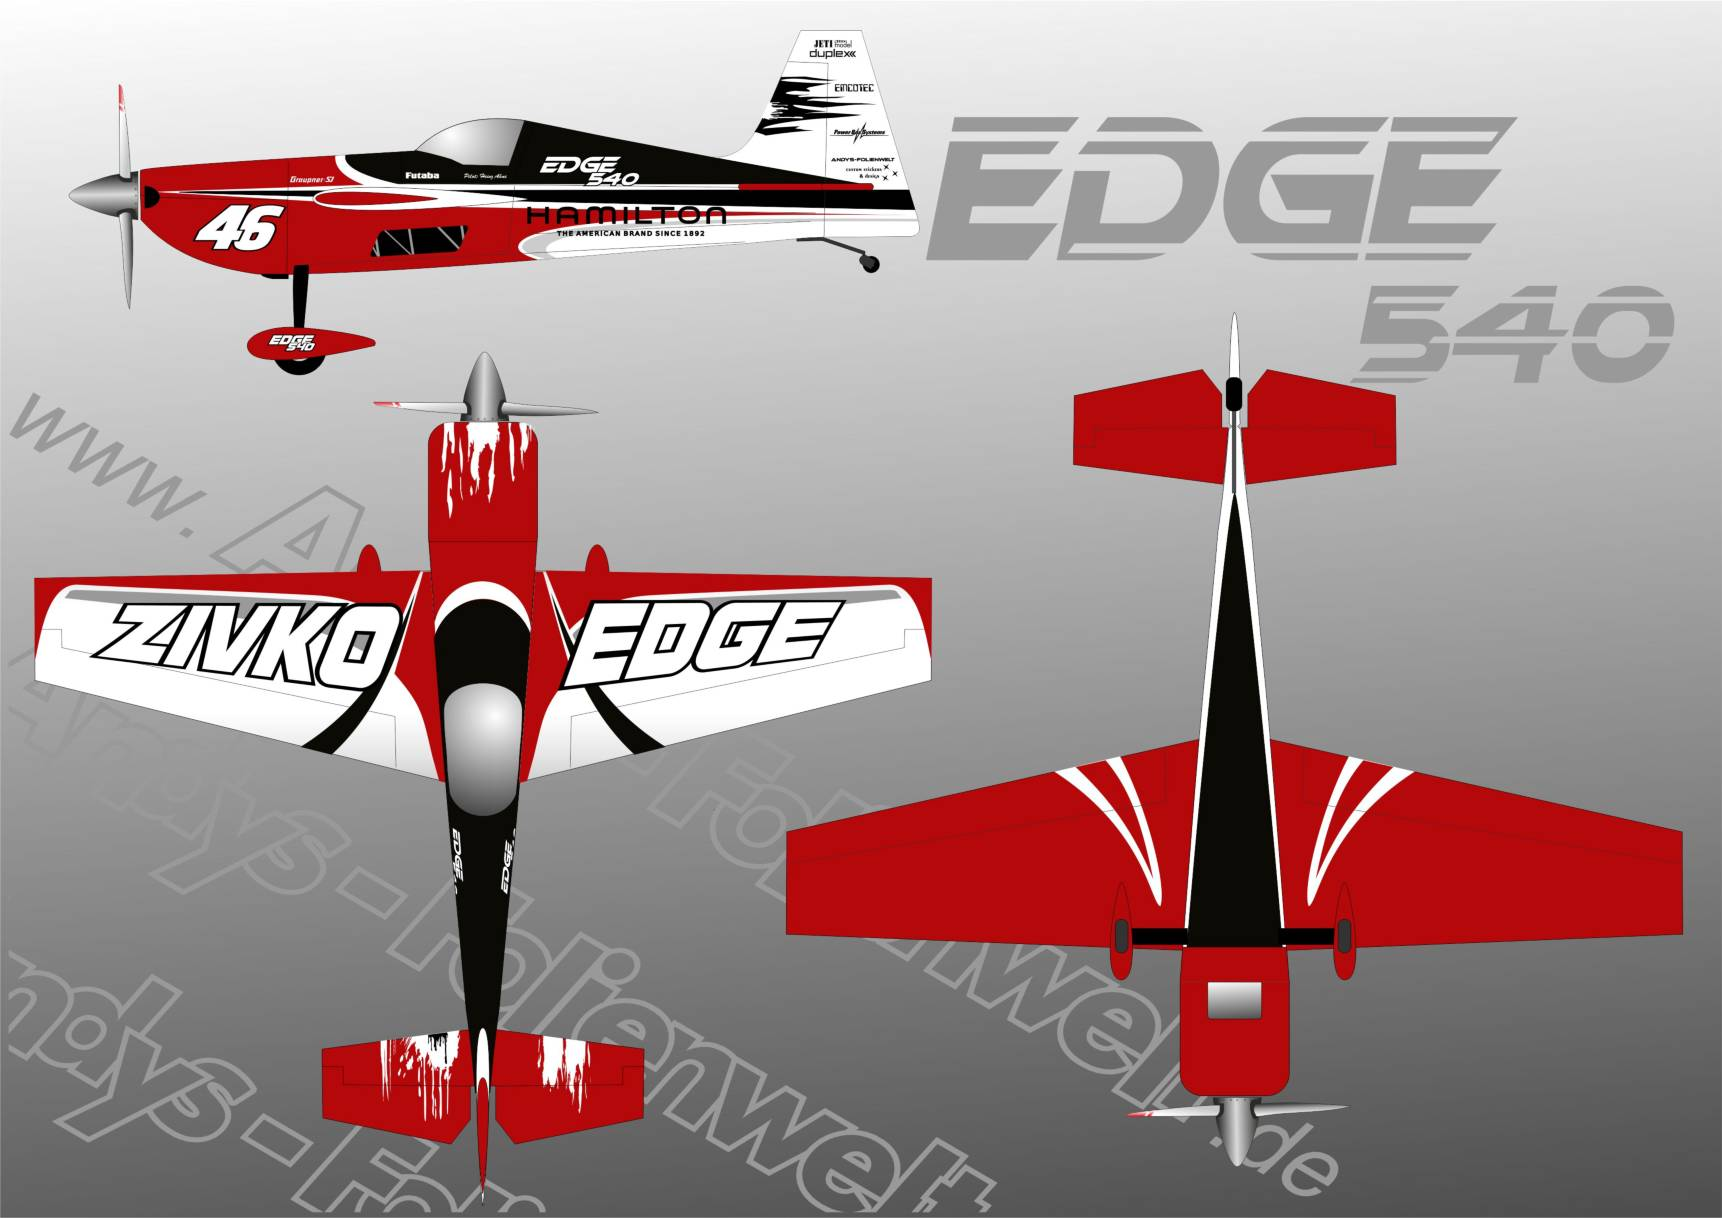 Edge 540 CARF racing red